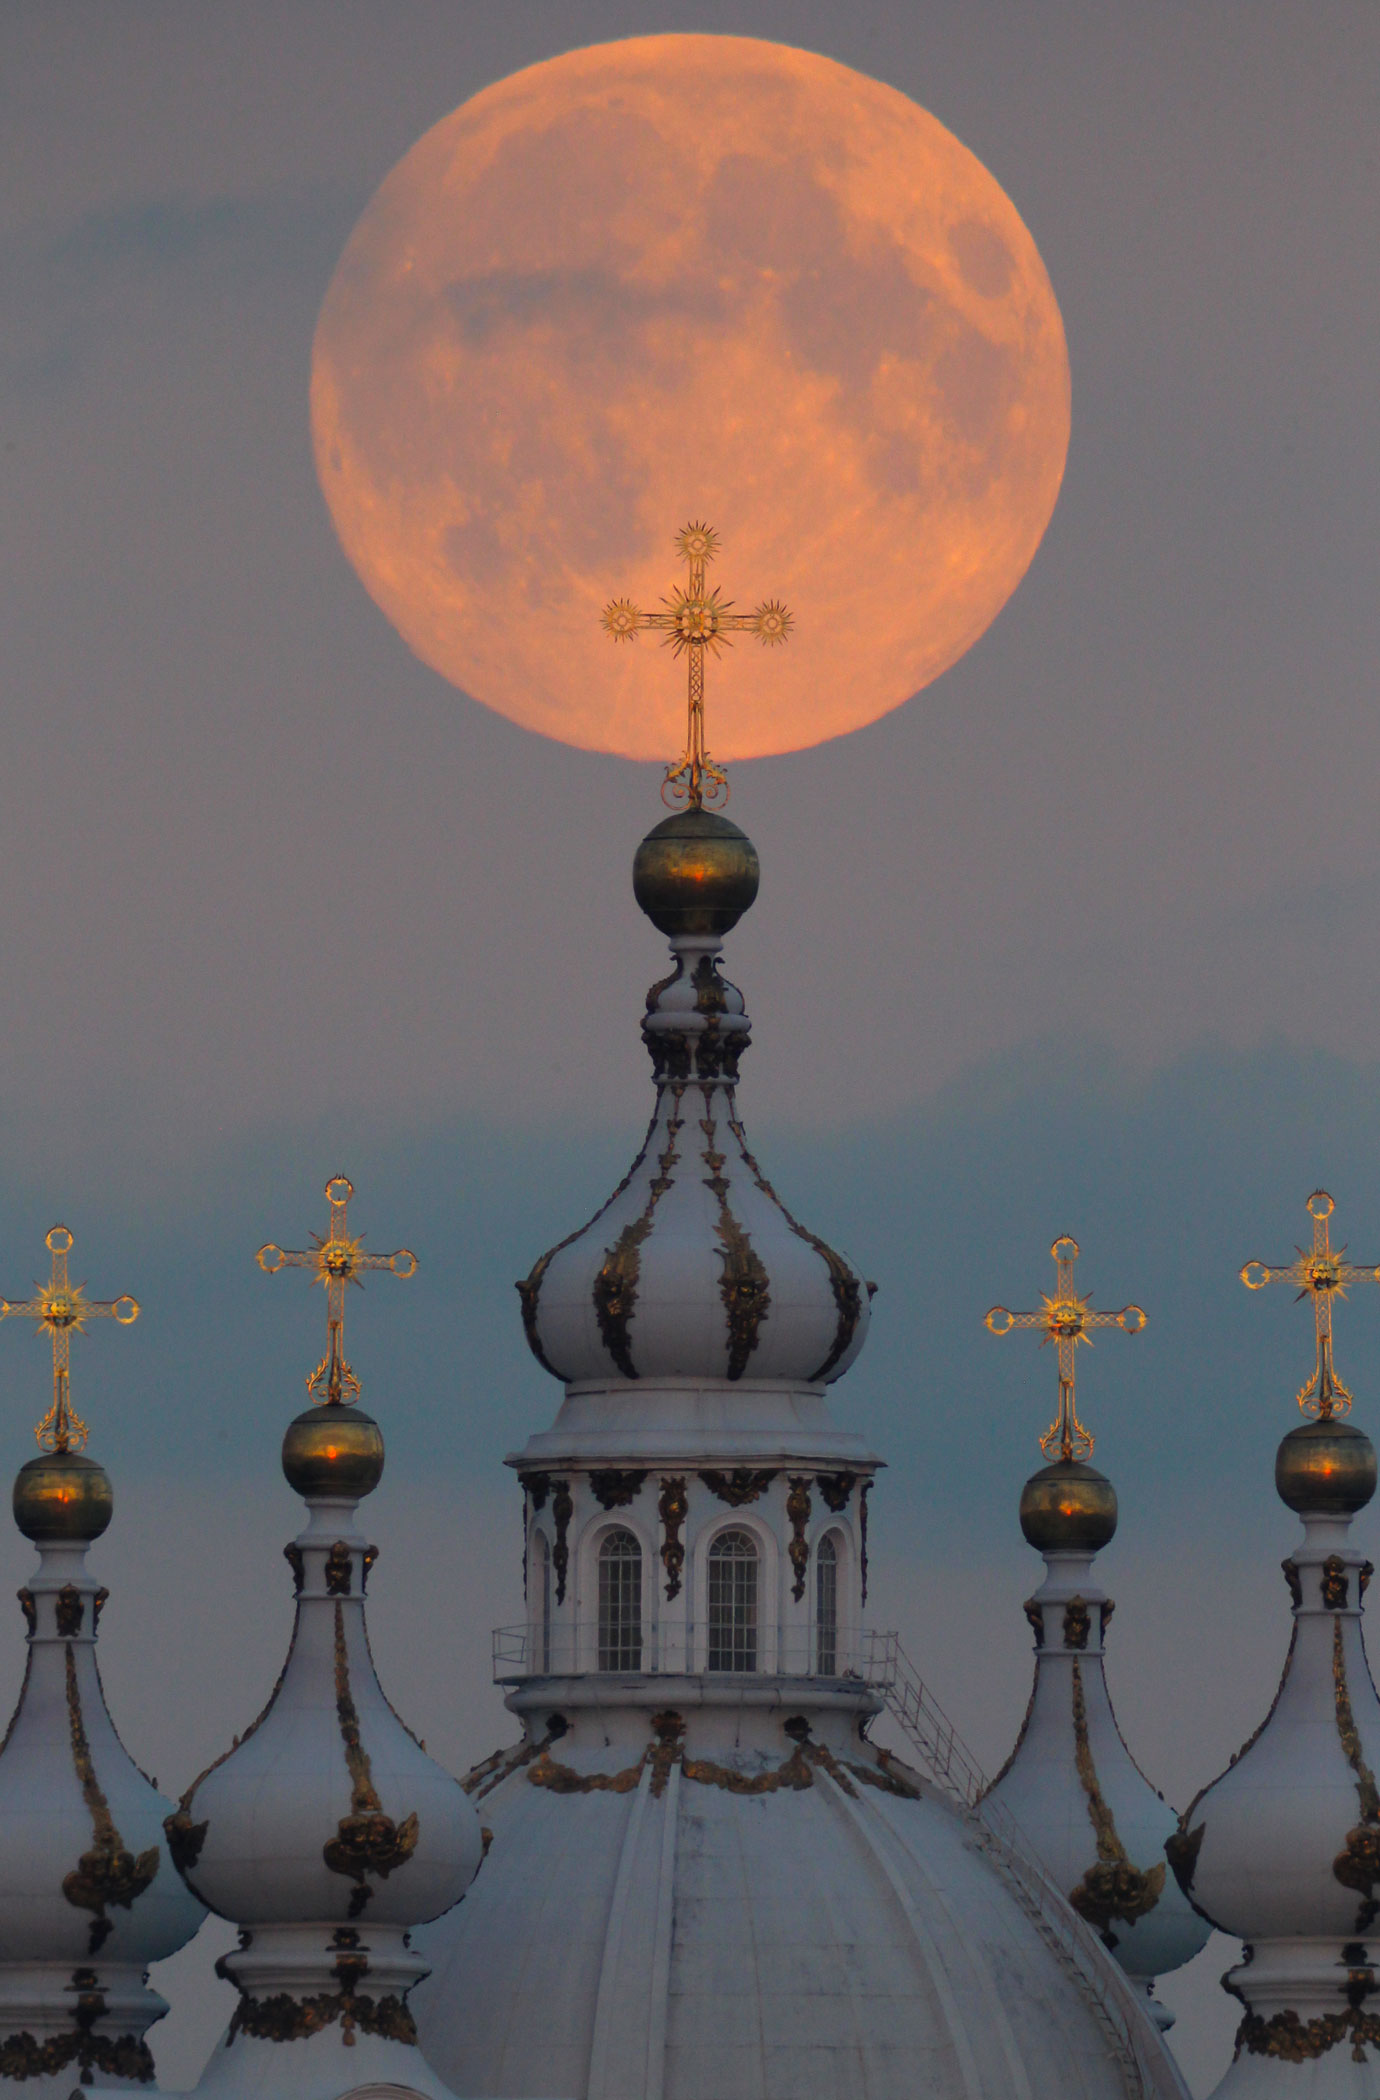 The harvest supermoon above the domes of the Smolny Cathedral in St.Petersburg, Russia, on Sept. 8, 2014.